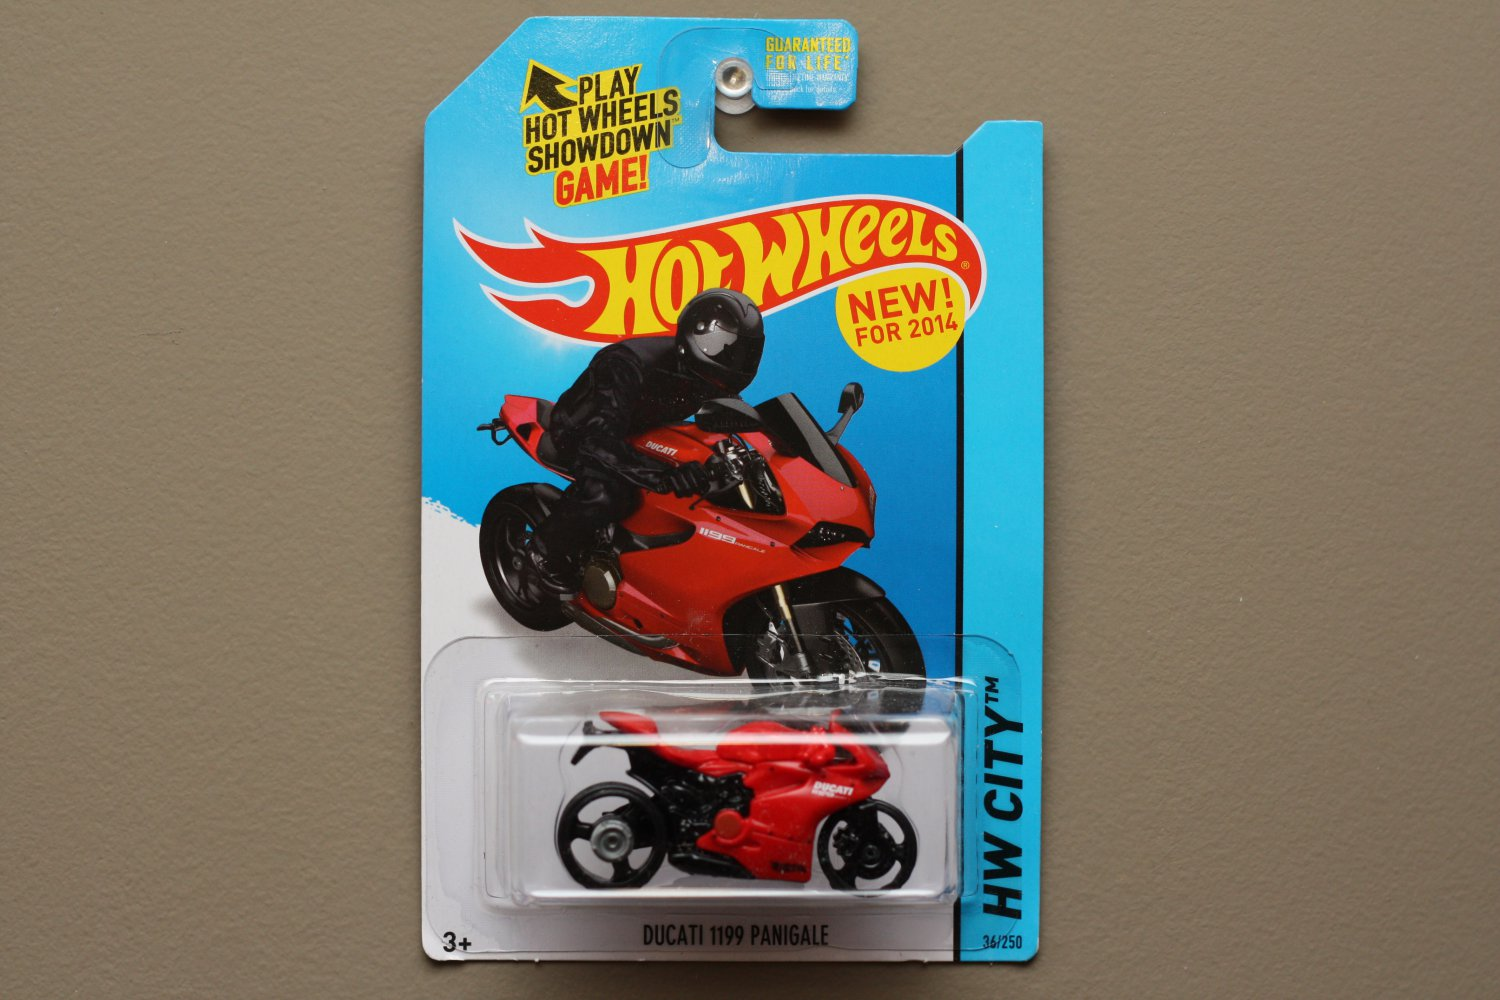 Hot Wheels 2014 HW City Ducati 1199 Panigale (red)